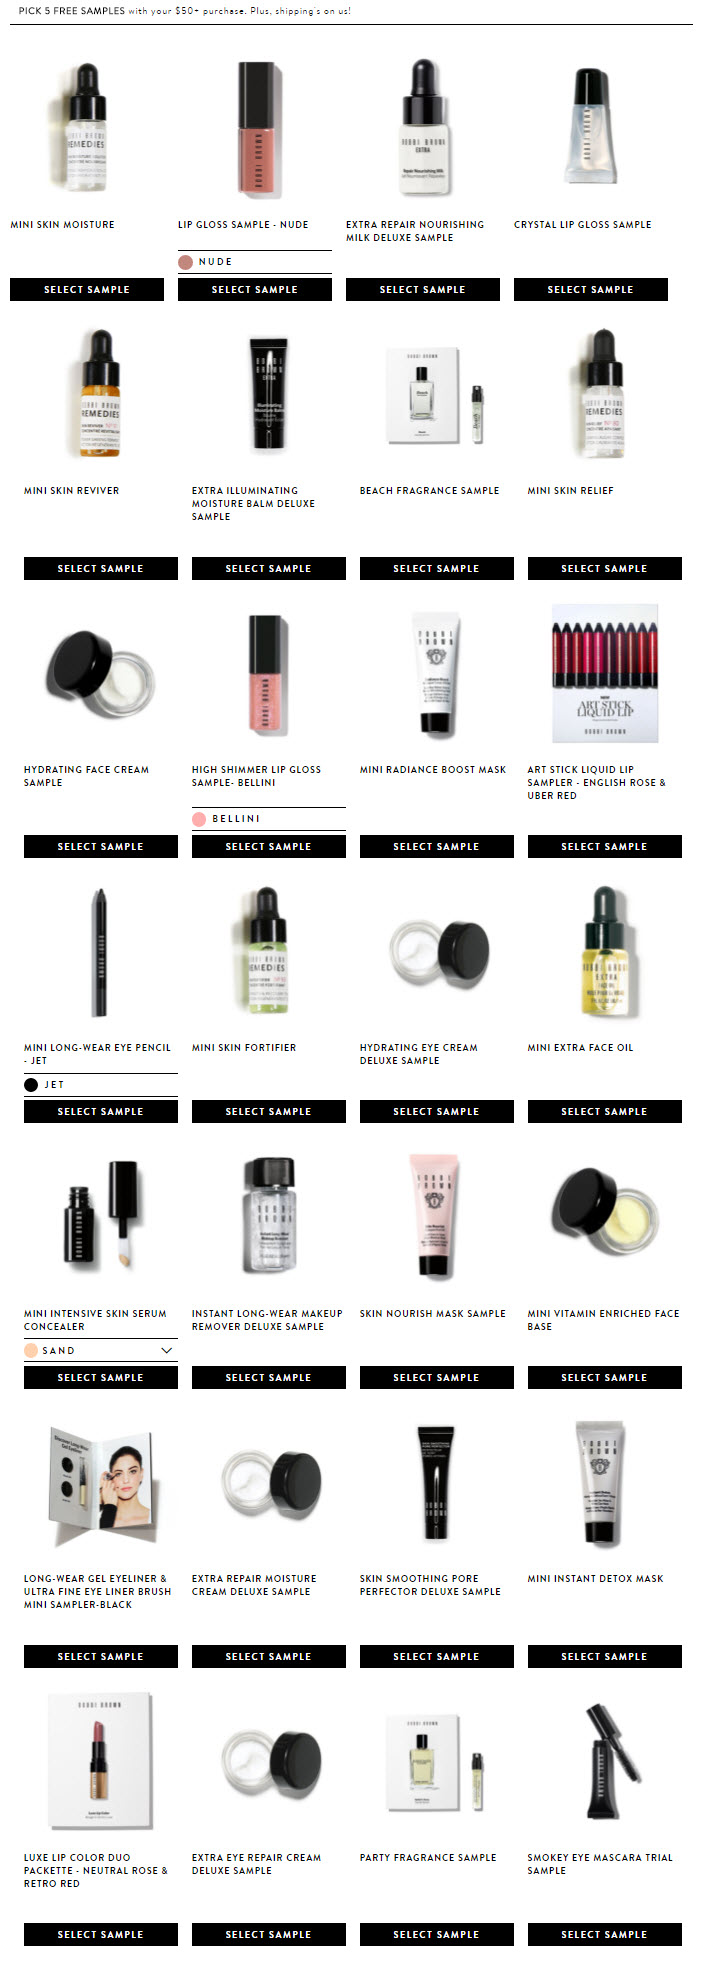 Receive your choice of 5-piece bonus gift with your $50 Bobbi Brown purchase